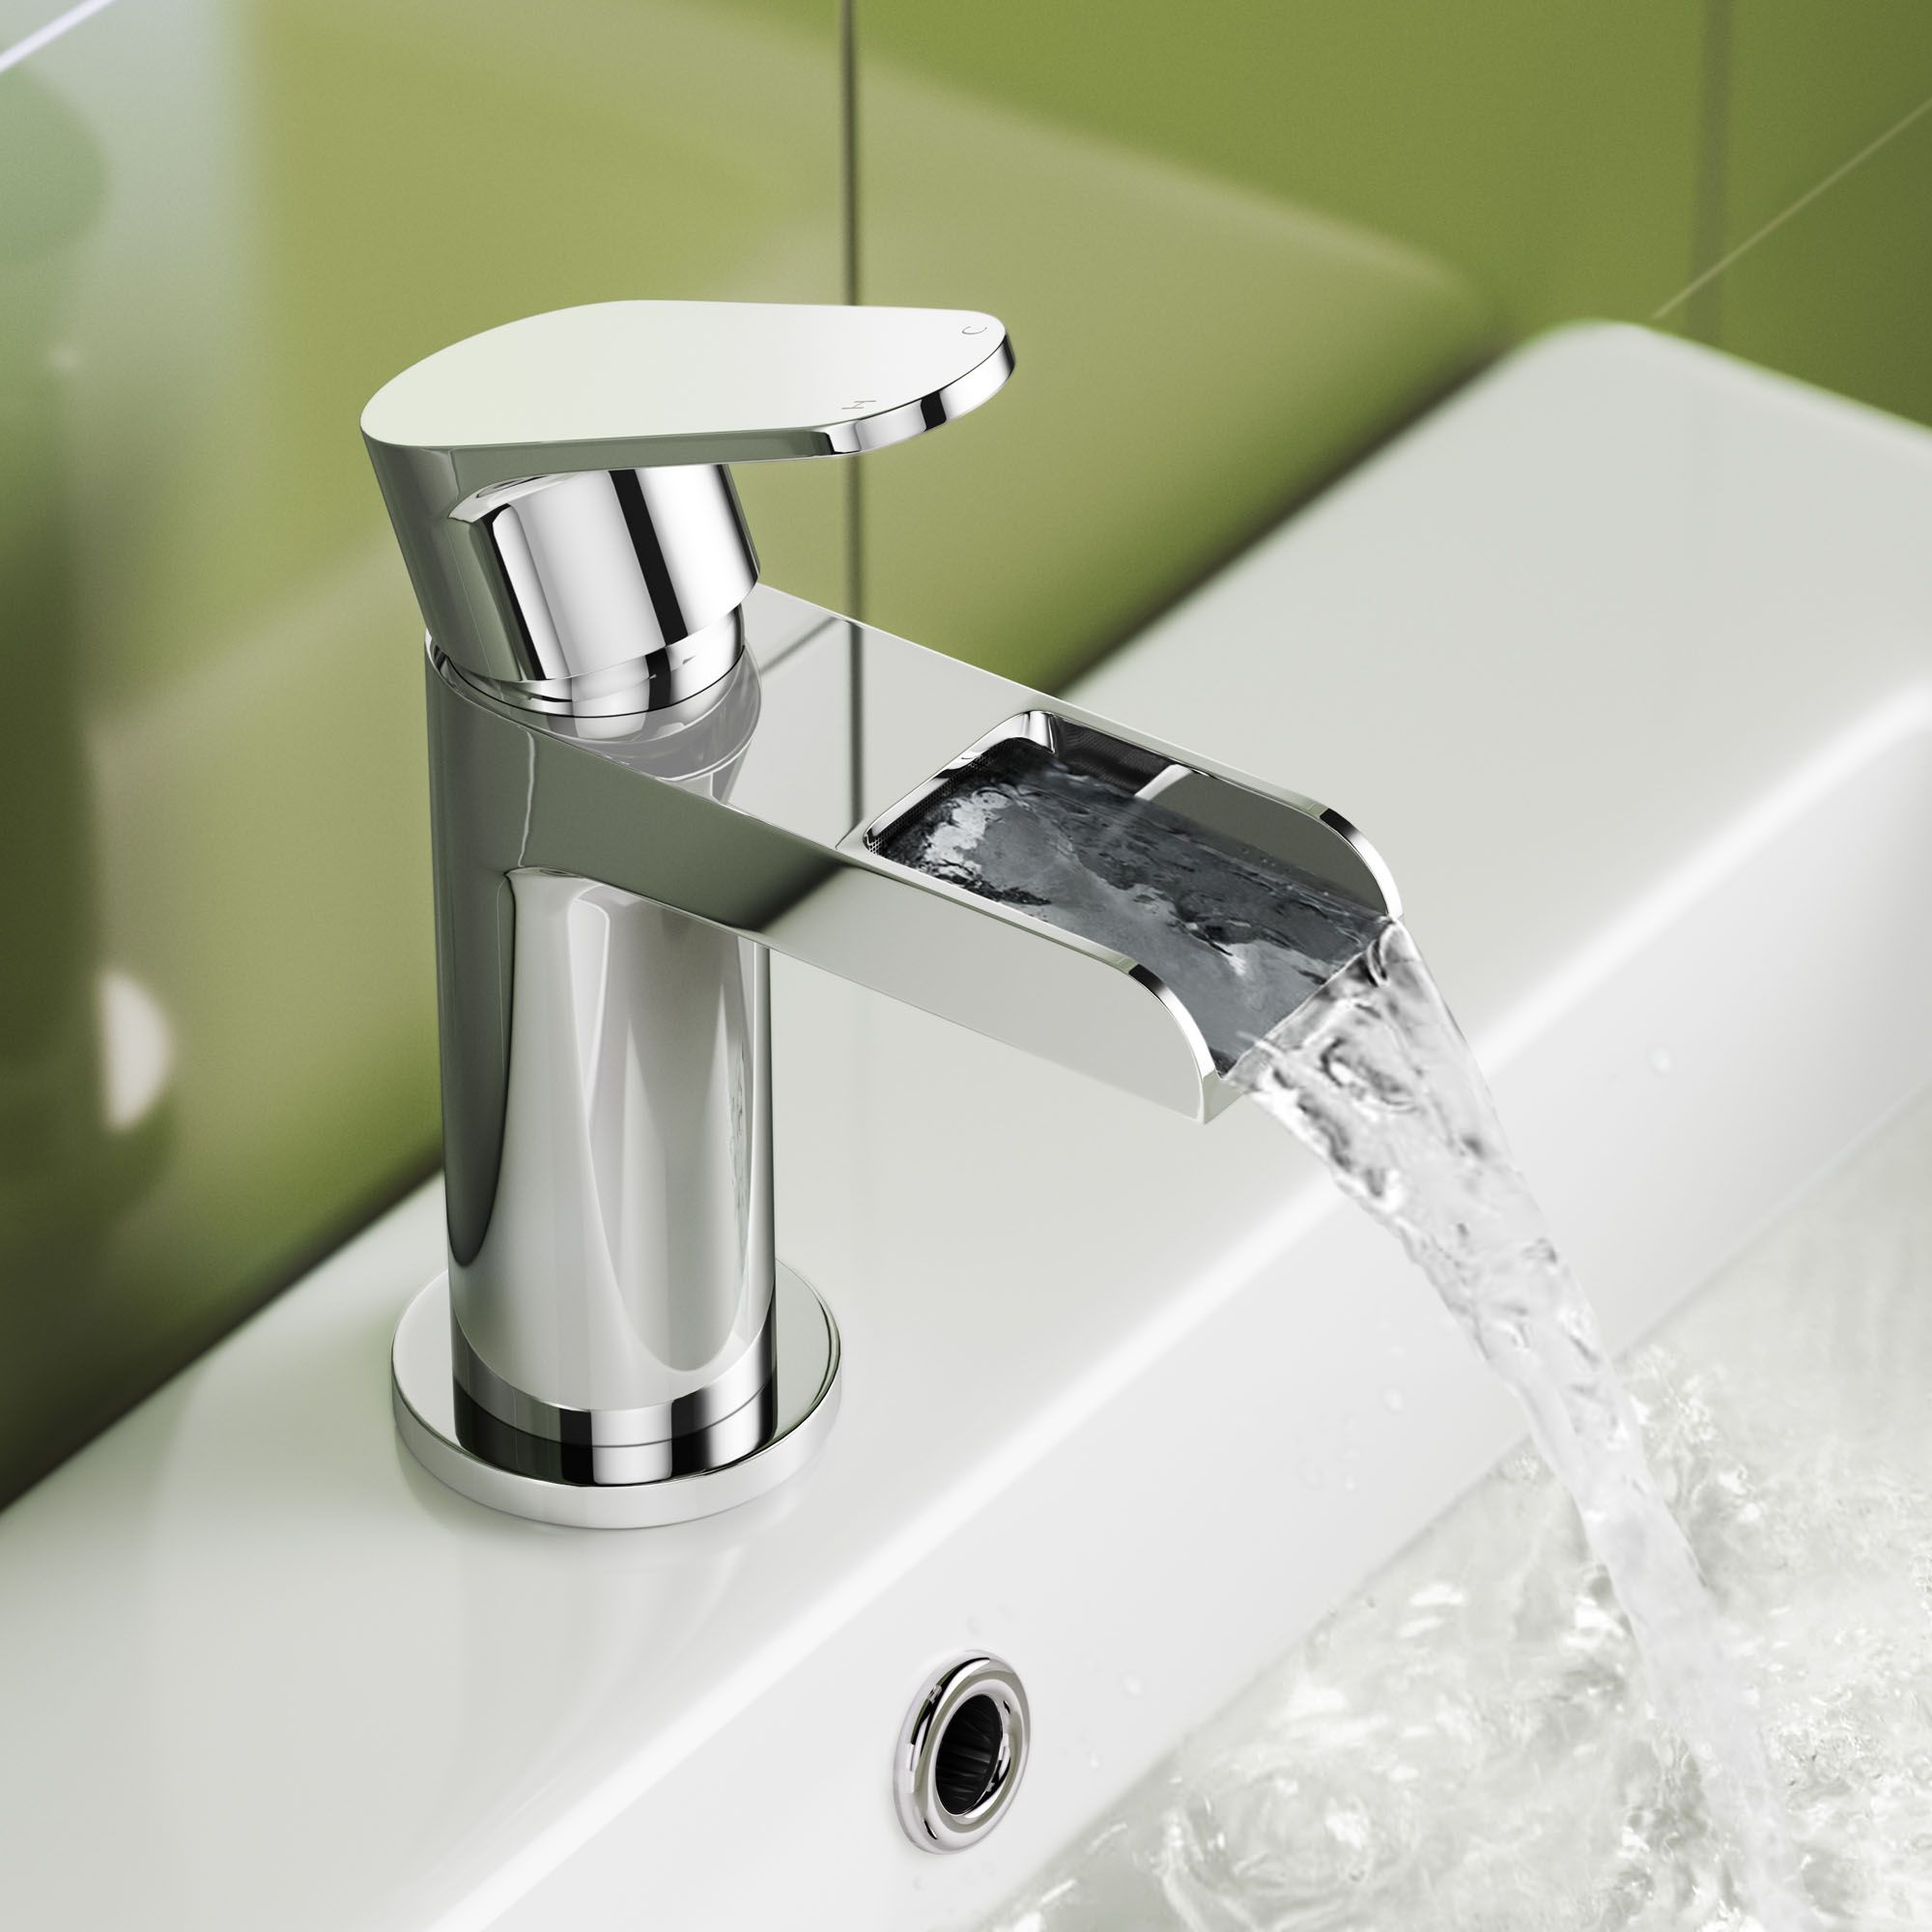 Lycos Faucets Bath accessories are as Export as taps, sanitary wares ...